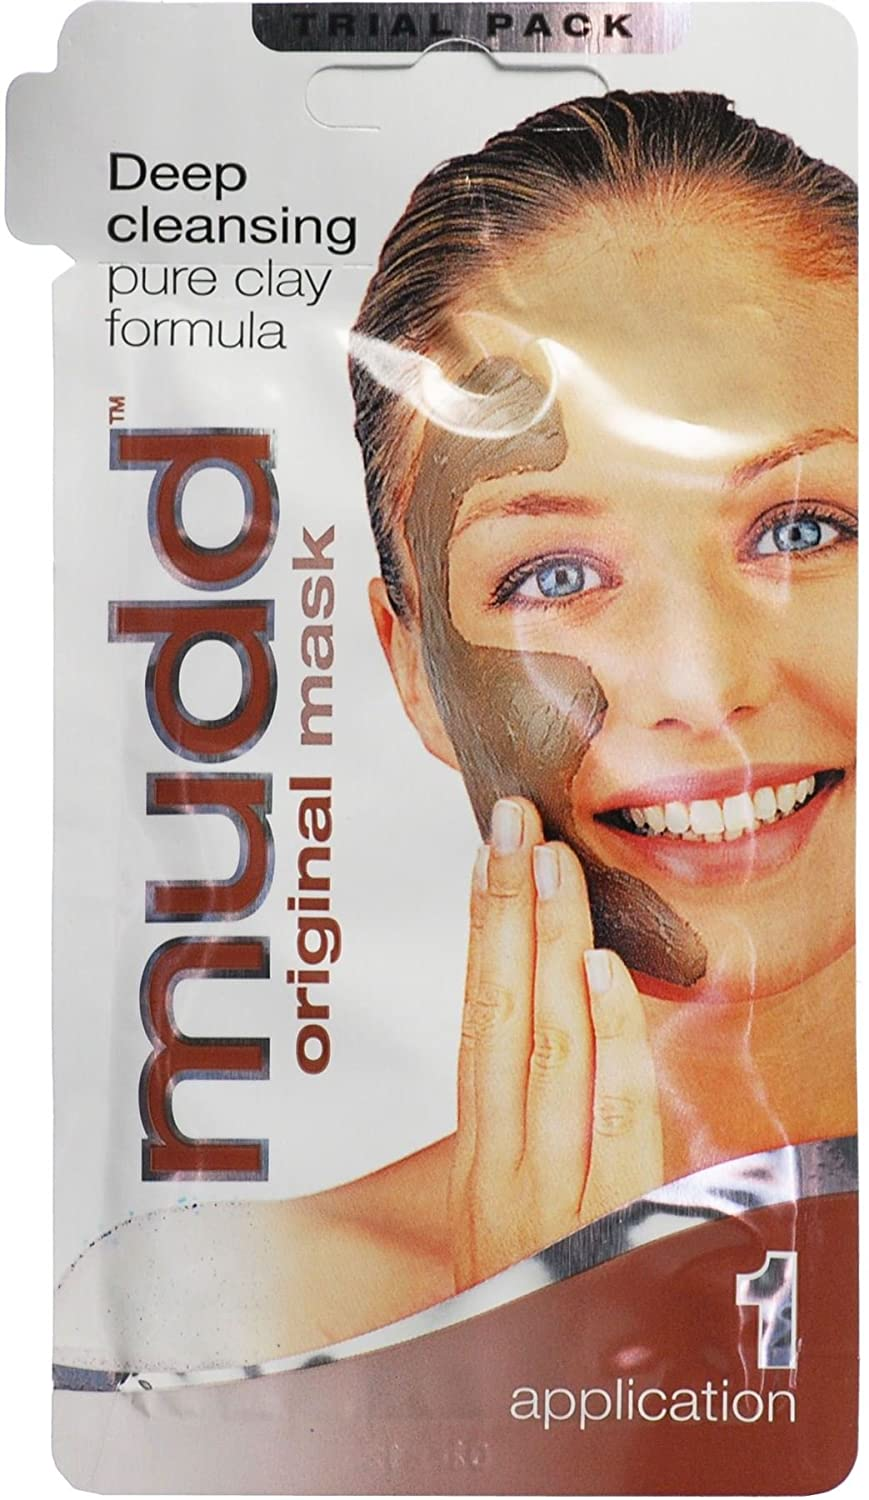 12 x Mudd Original Mask Deep Cleansing Pure Clay Formula 10ml